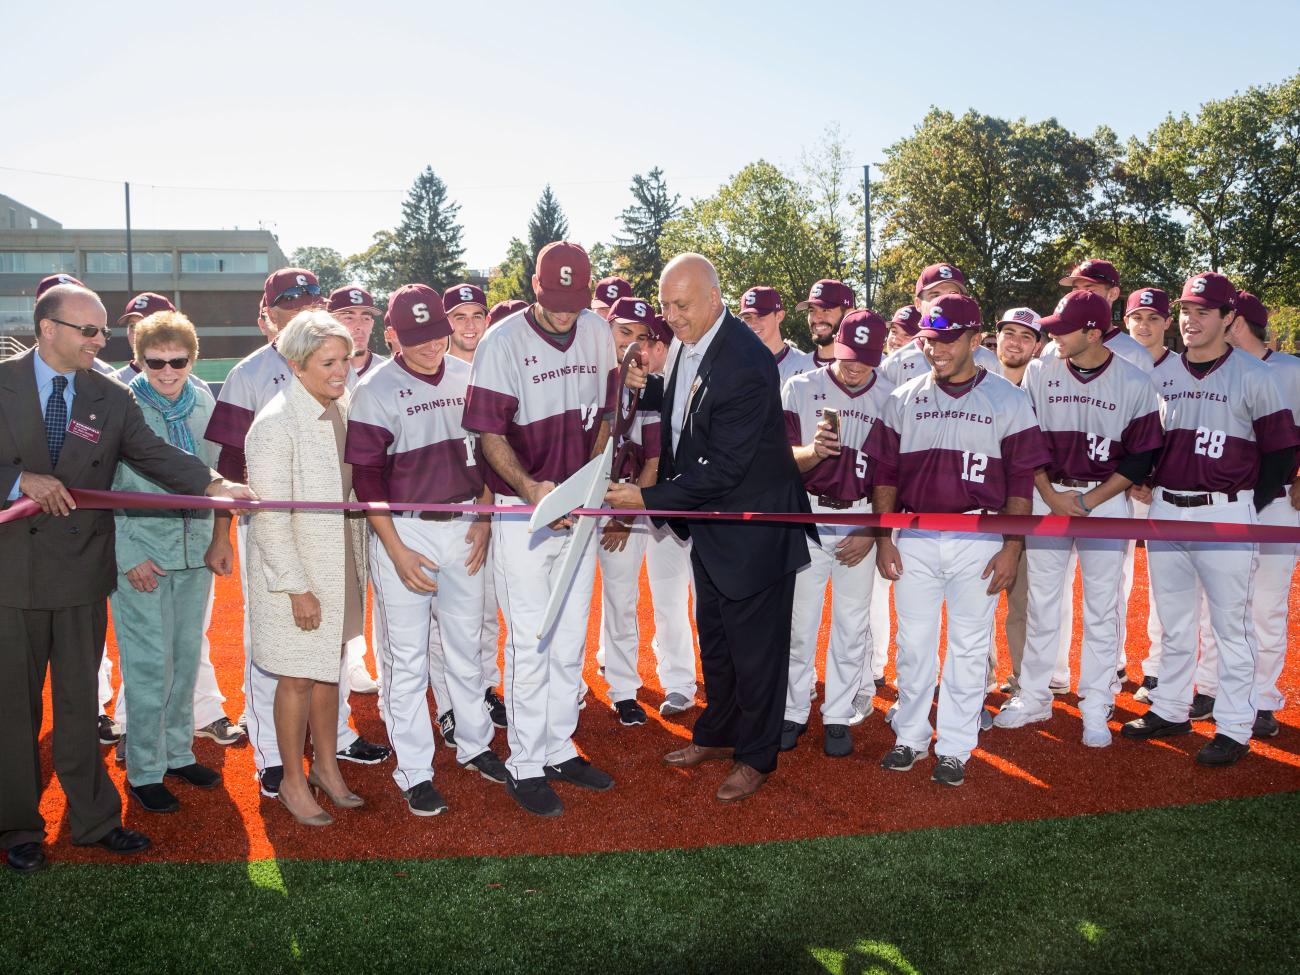 The Springfield College Men's baseball team, college leaders, and Cal Ripken Jr. join together to cut the ribbon on the new adaptive field.